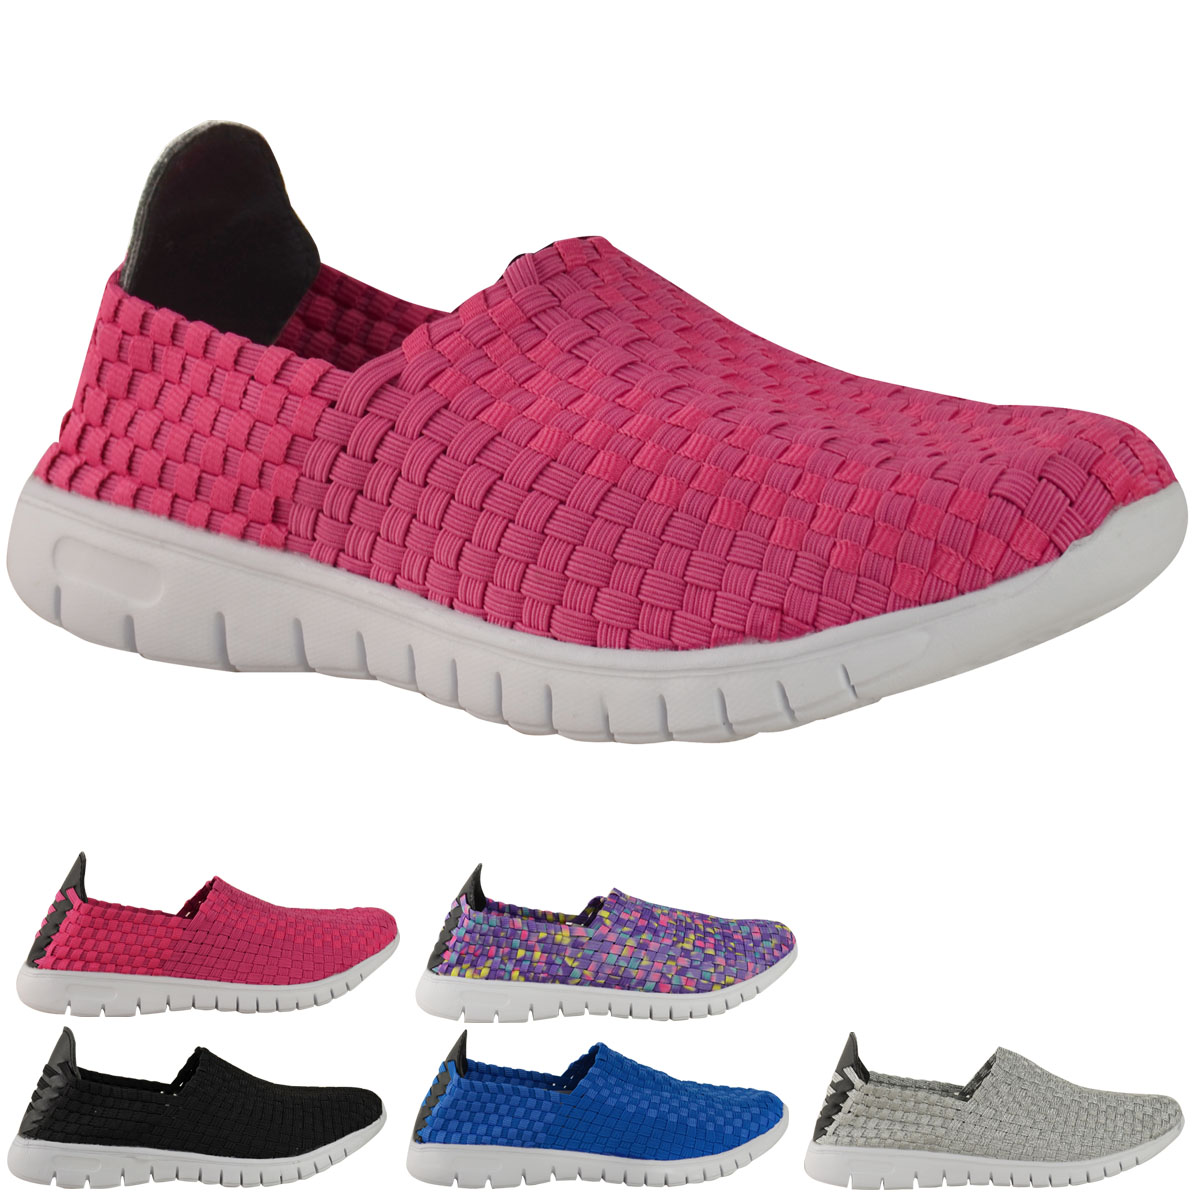 Shop cheap shoes for Women discount prices online, buy Women's cheap shoes at below cost from tokosepatu.ga and get free shipping on orders over $ Discount shoes don't have to be out of style, find in season discount shoes for women in our updated daily shoe sale section.